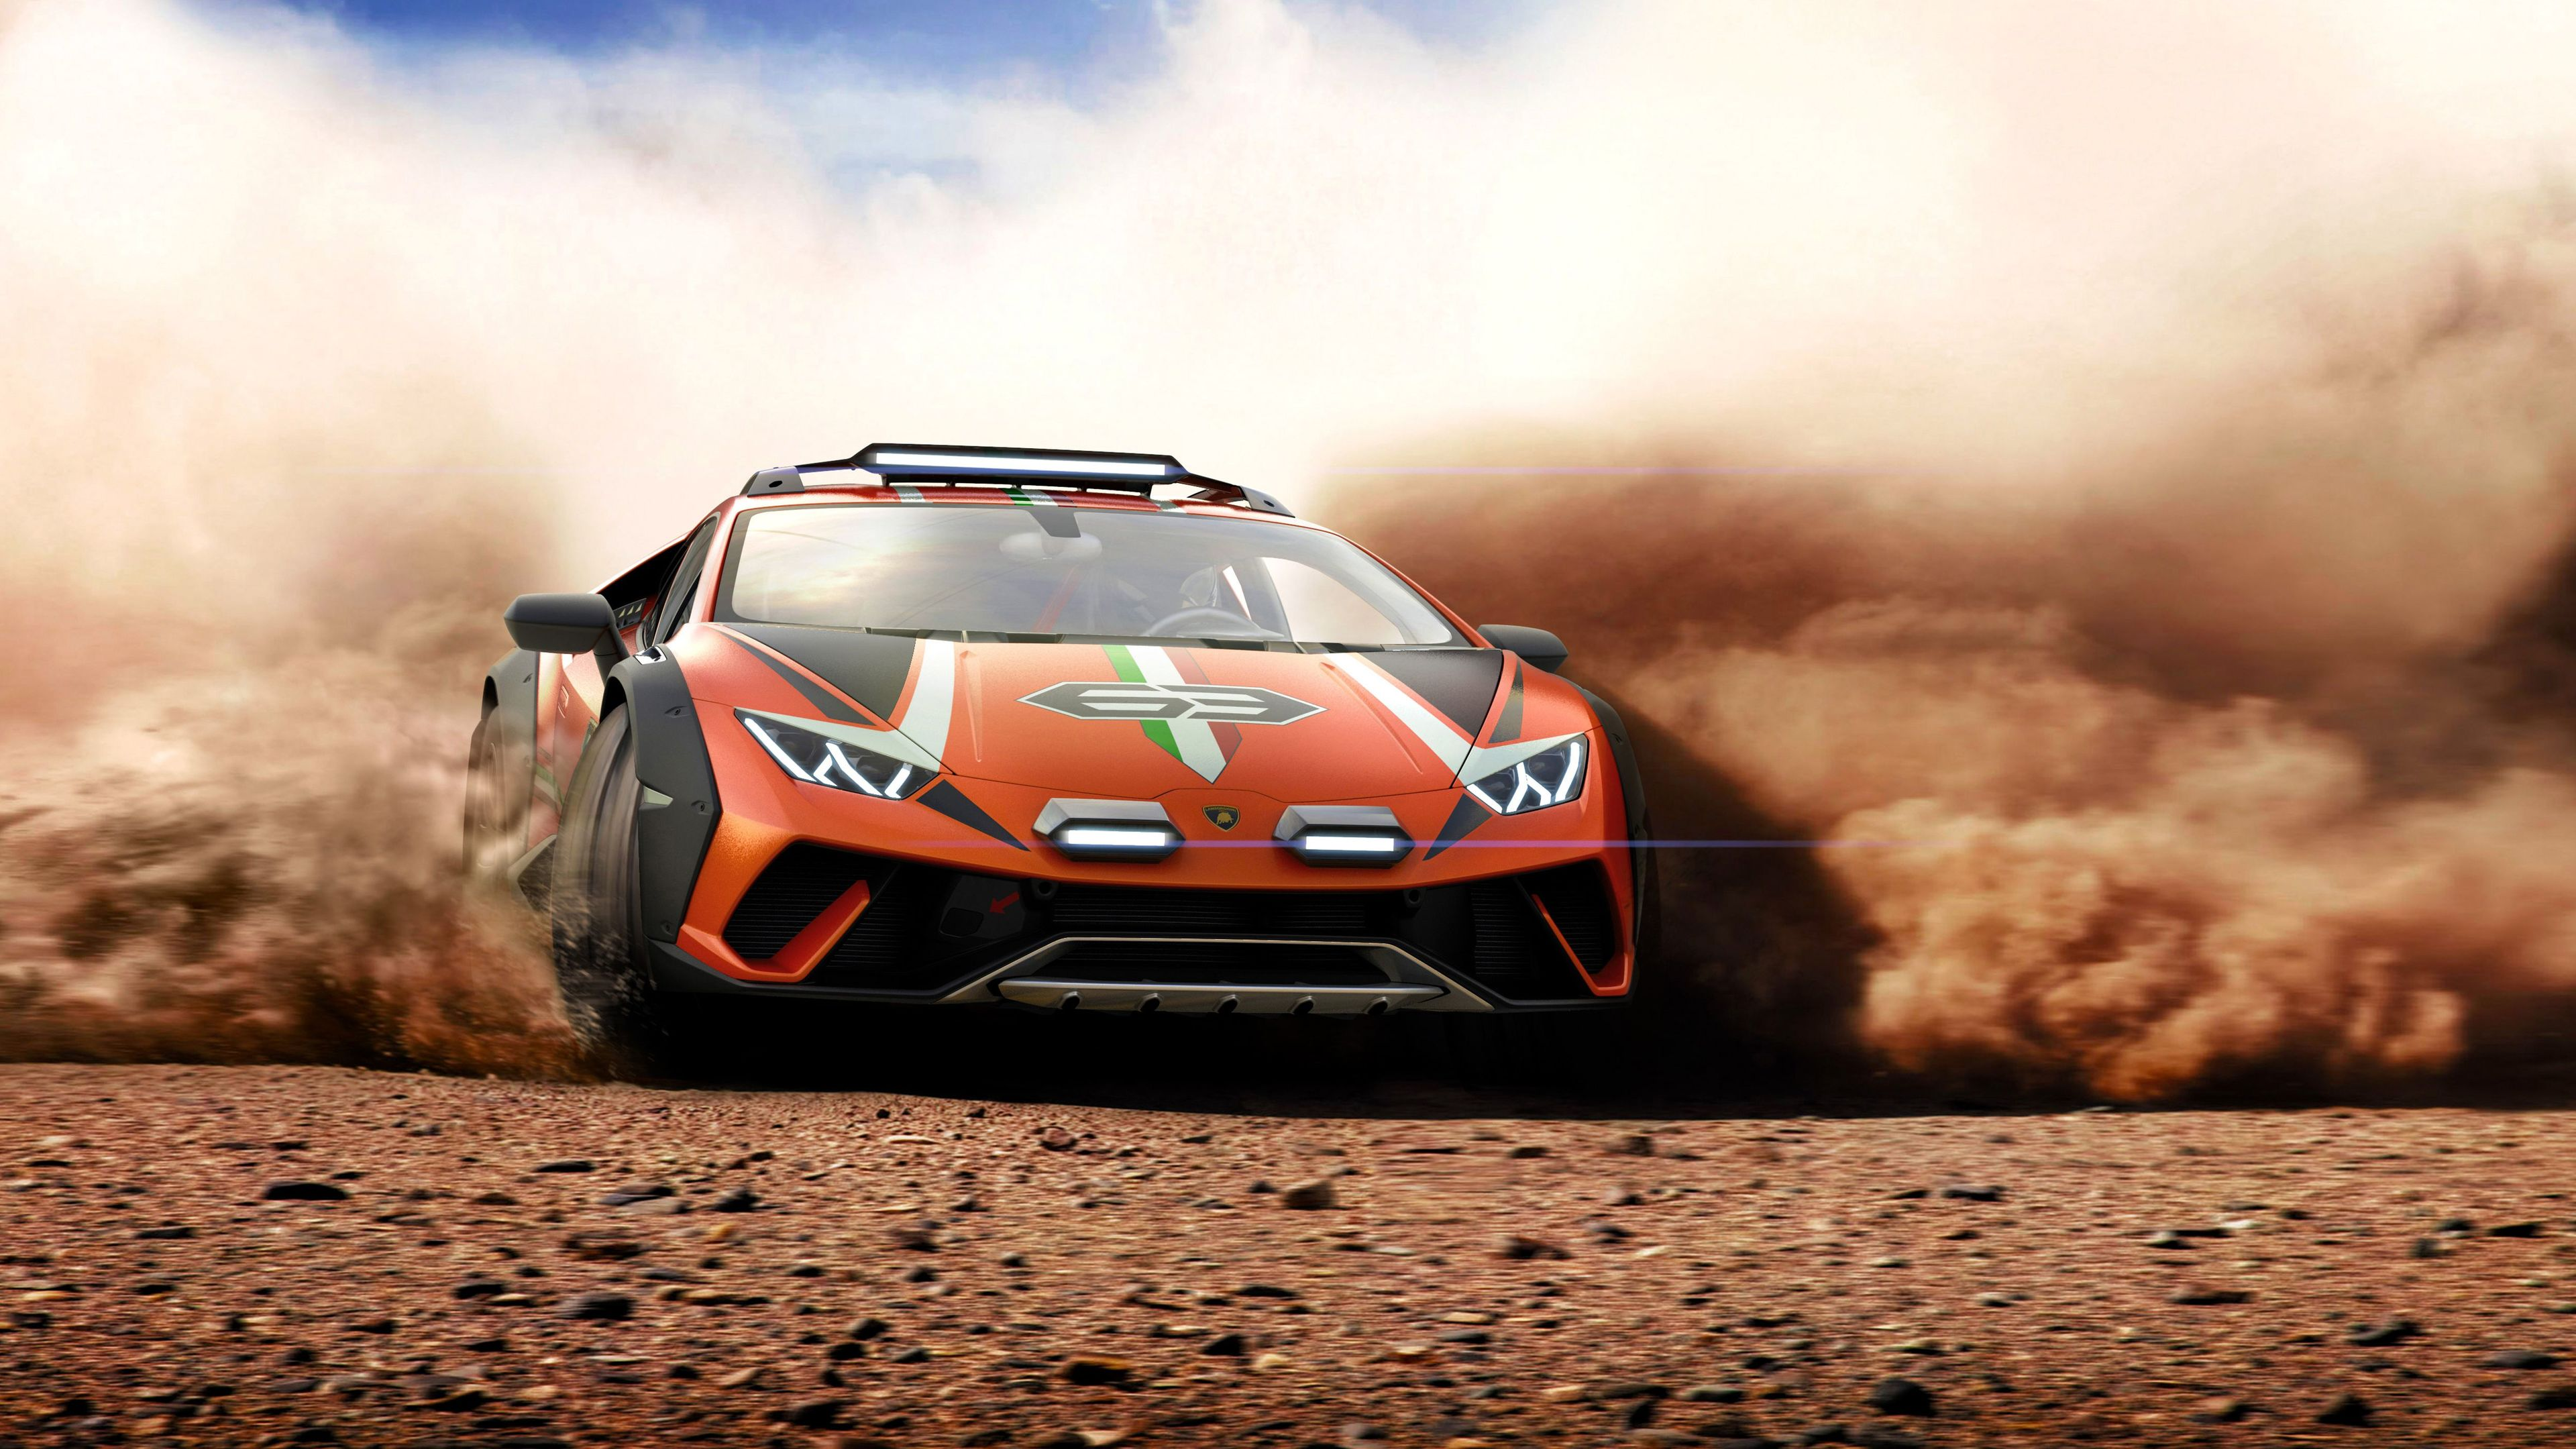 lamborghini huracan sterrato concept 2019 offroad 1562107934 - Lamborghini Huracan Sterrato Concept 2019 Offroad - lamborghini wallpapers, lamborghini huracan wallpapers, lamborghini huracan sterrato wallpapers, hd-wallpapers, cars wallpapers, 5k wallpapers, 4k-wallpapers, 2019 cars wallpapers